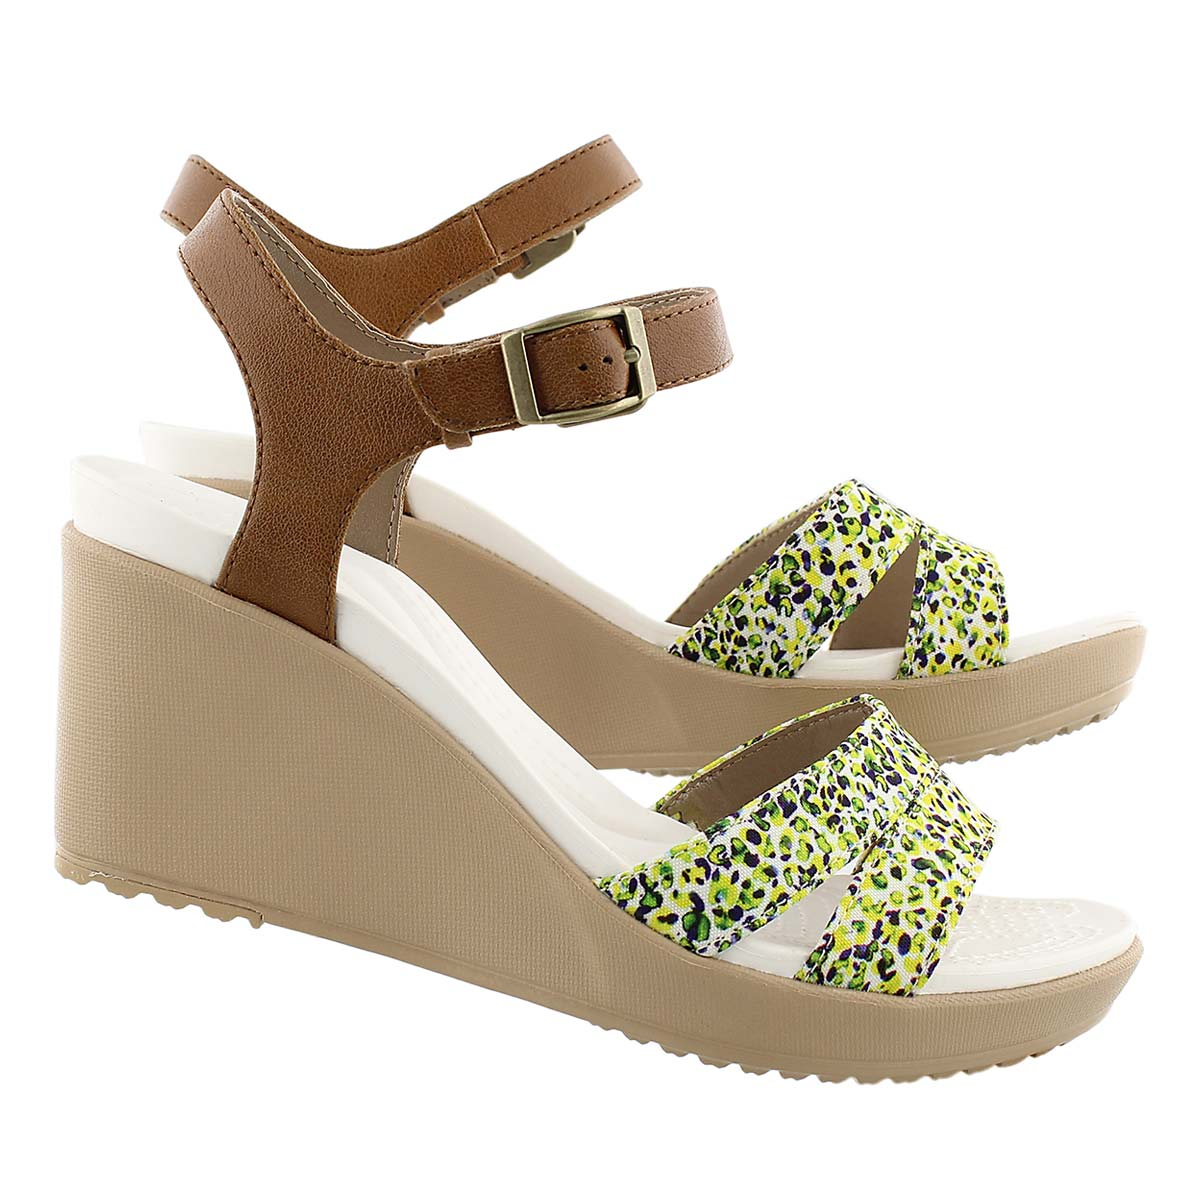 Lds Leigh II hzlnt/gld wedge sandal